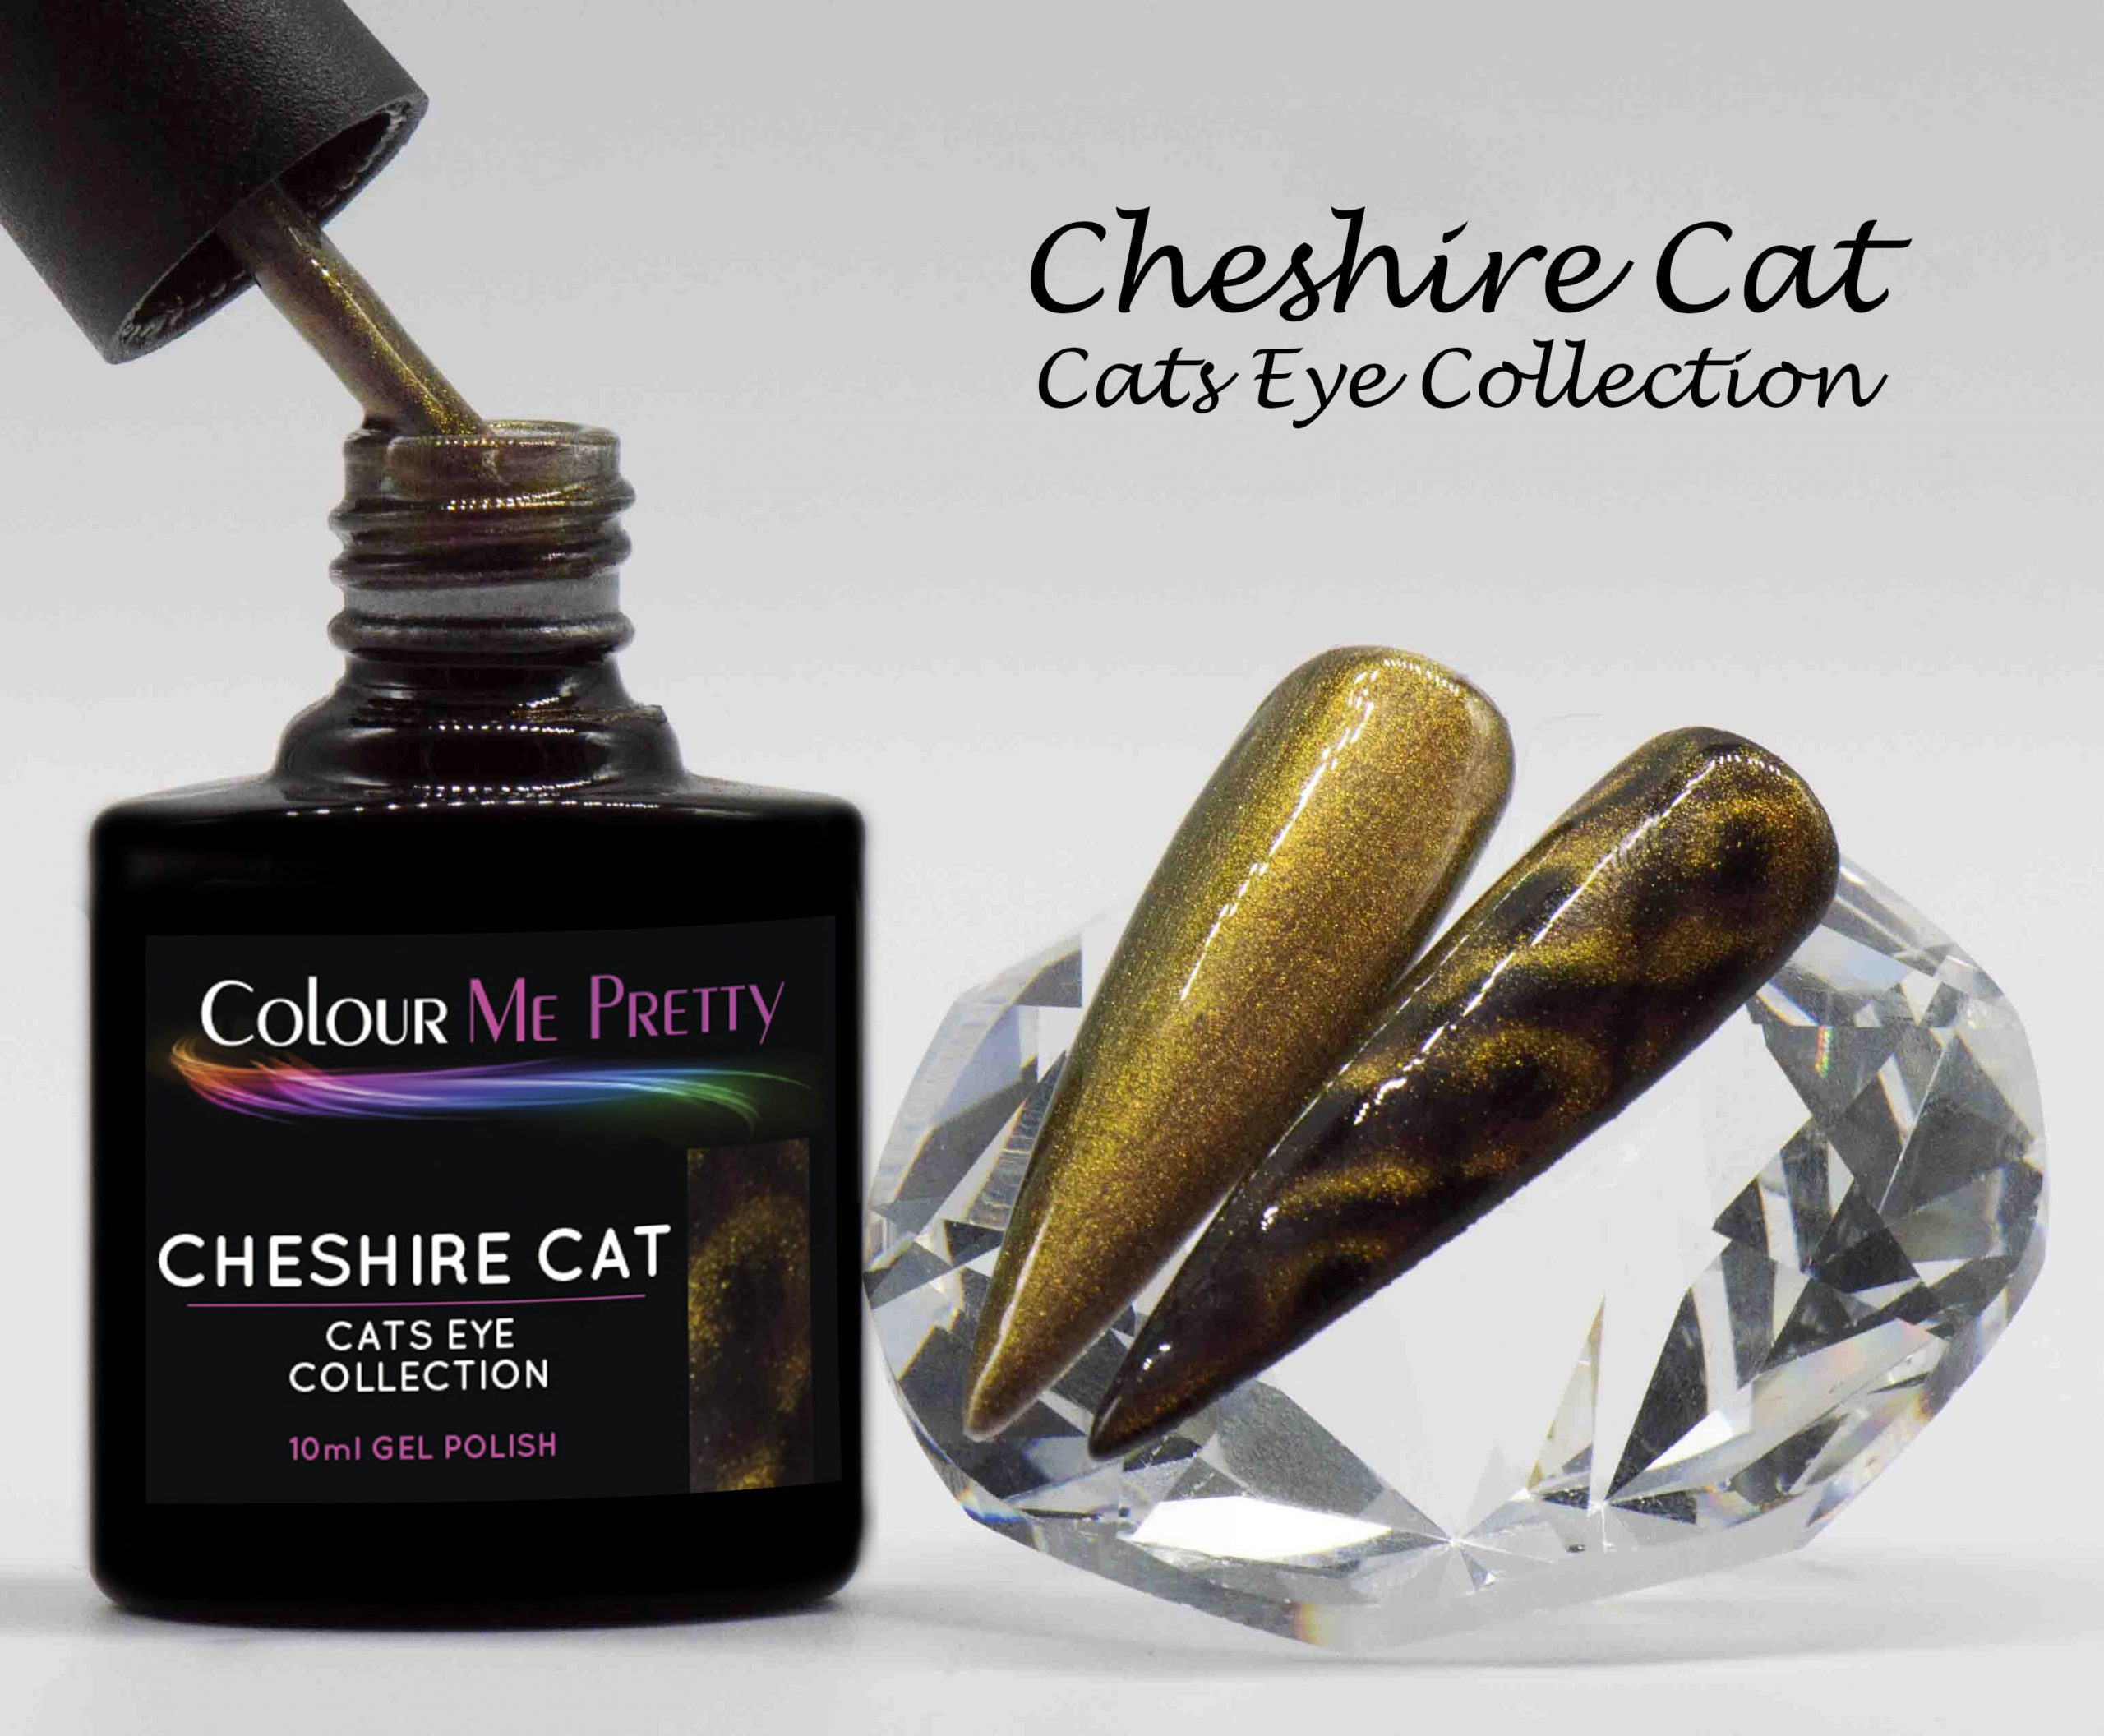 Cats Eye Cheshire Cat